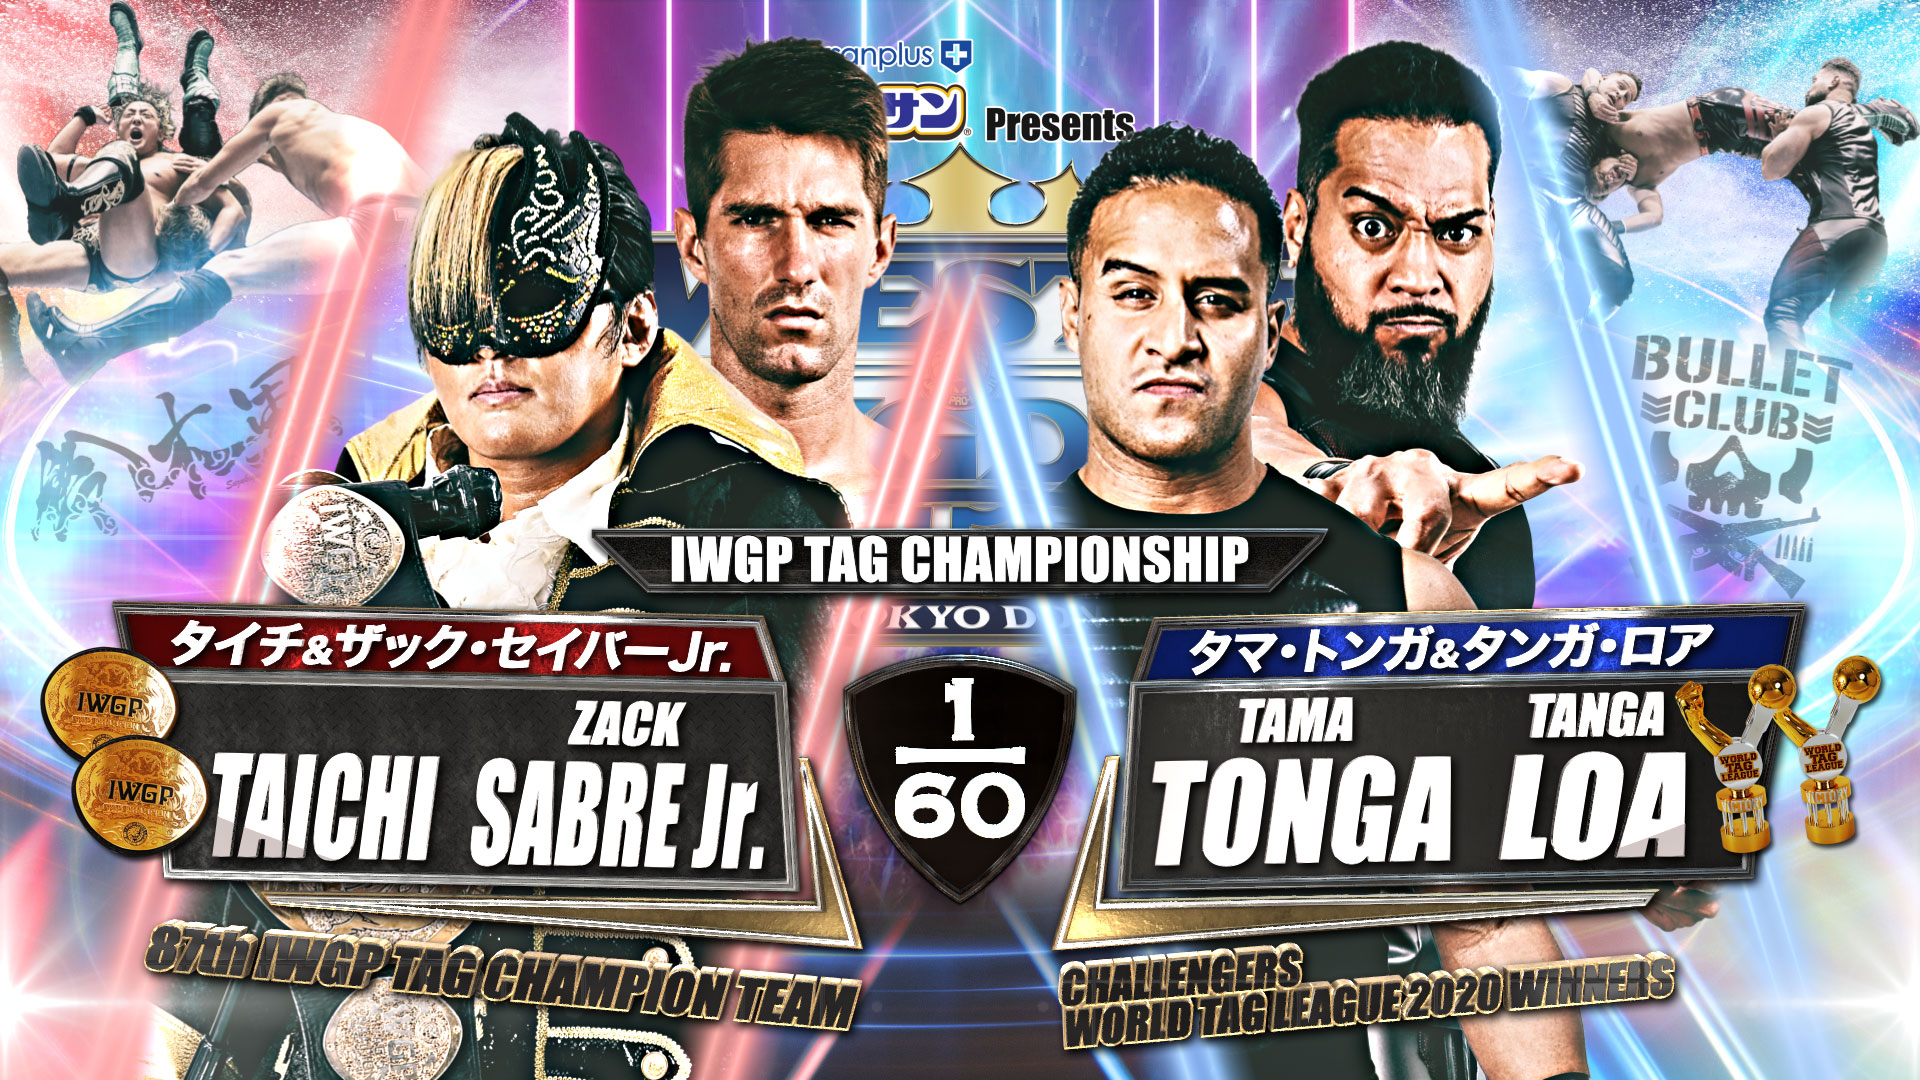 Dangerous Tekkers will defend their IWGP Tag Championships against Guerrillas of Destiny at NJPW Wrestle Kingdom 15